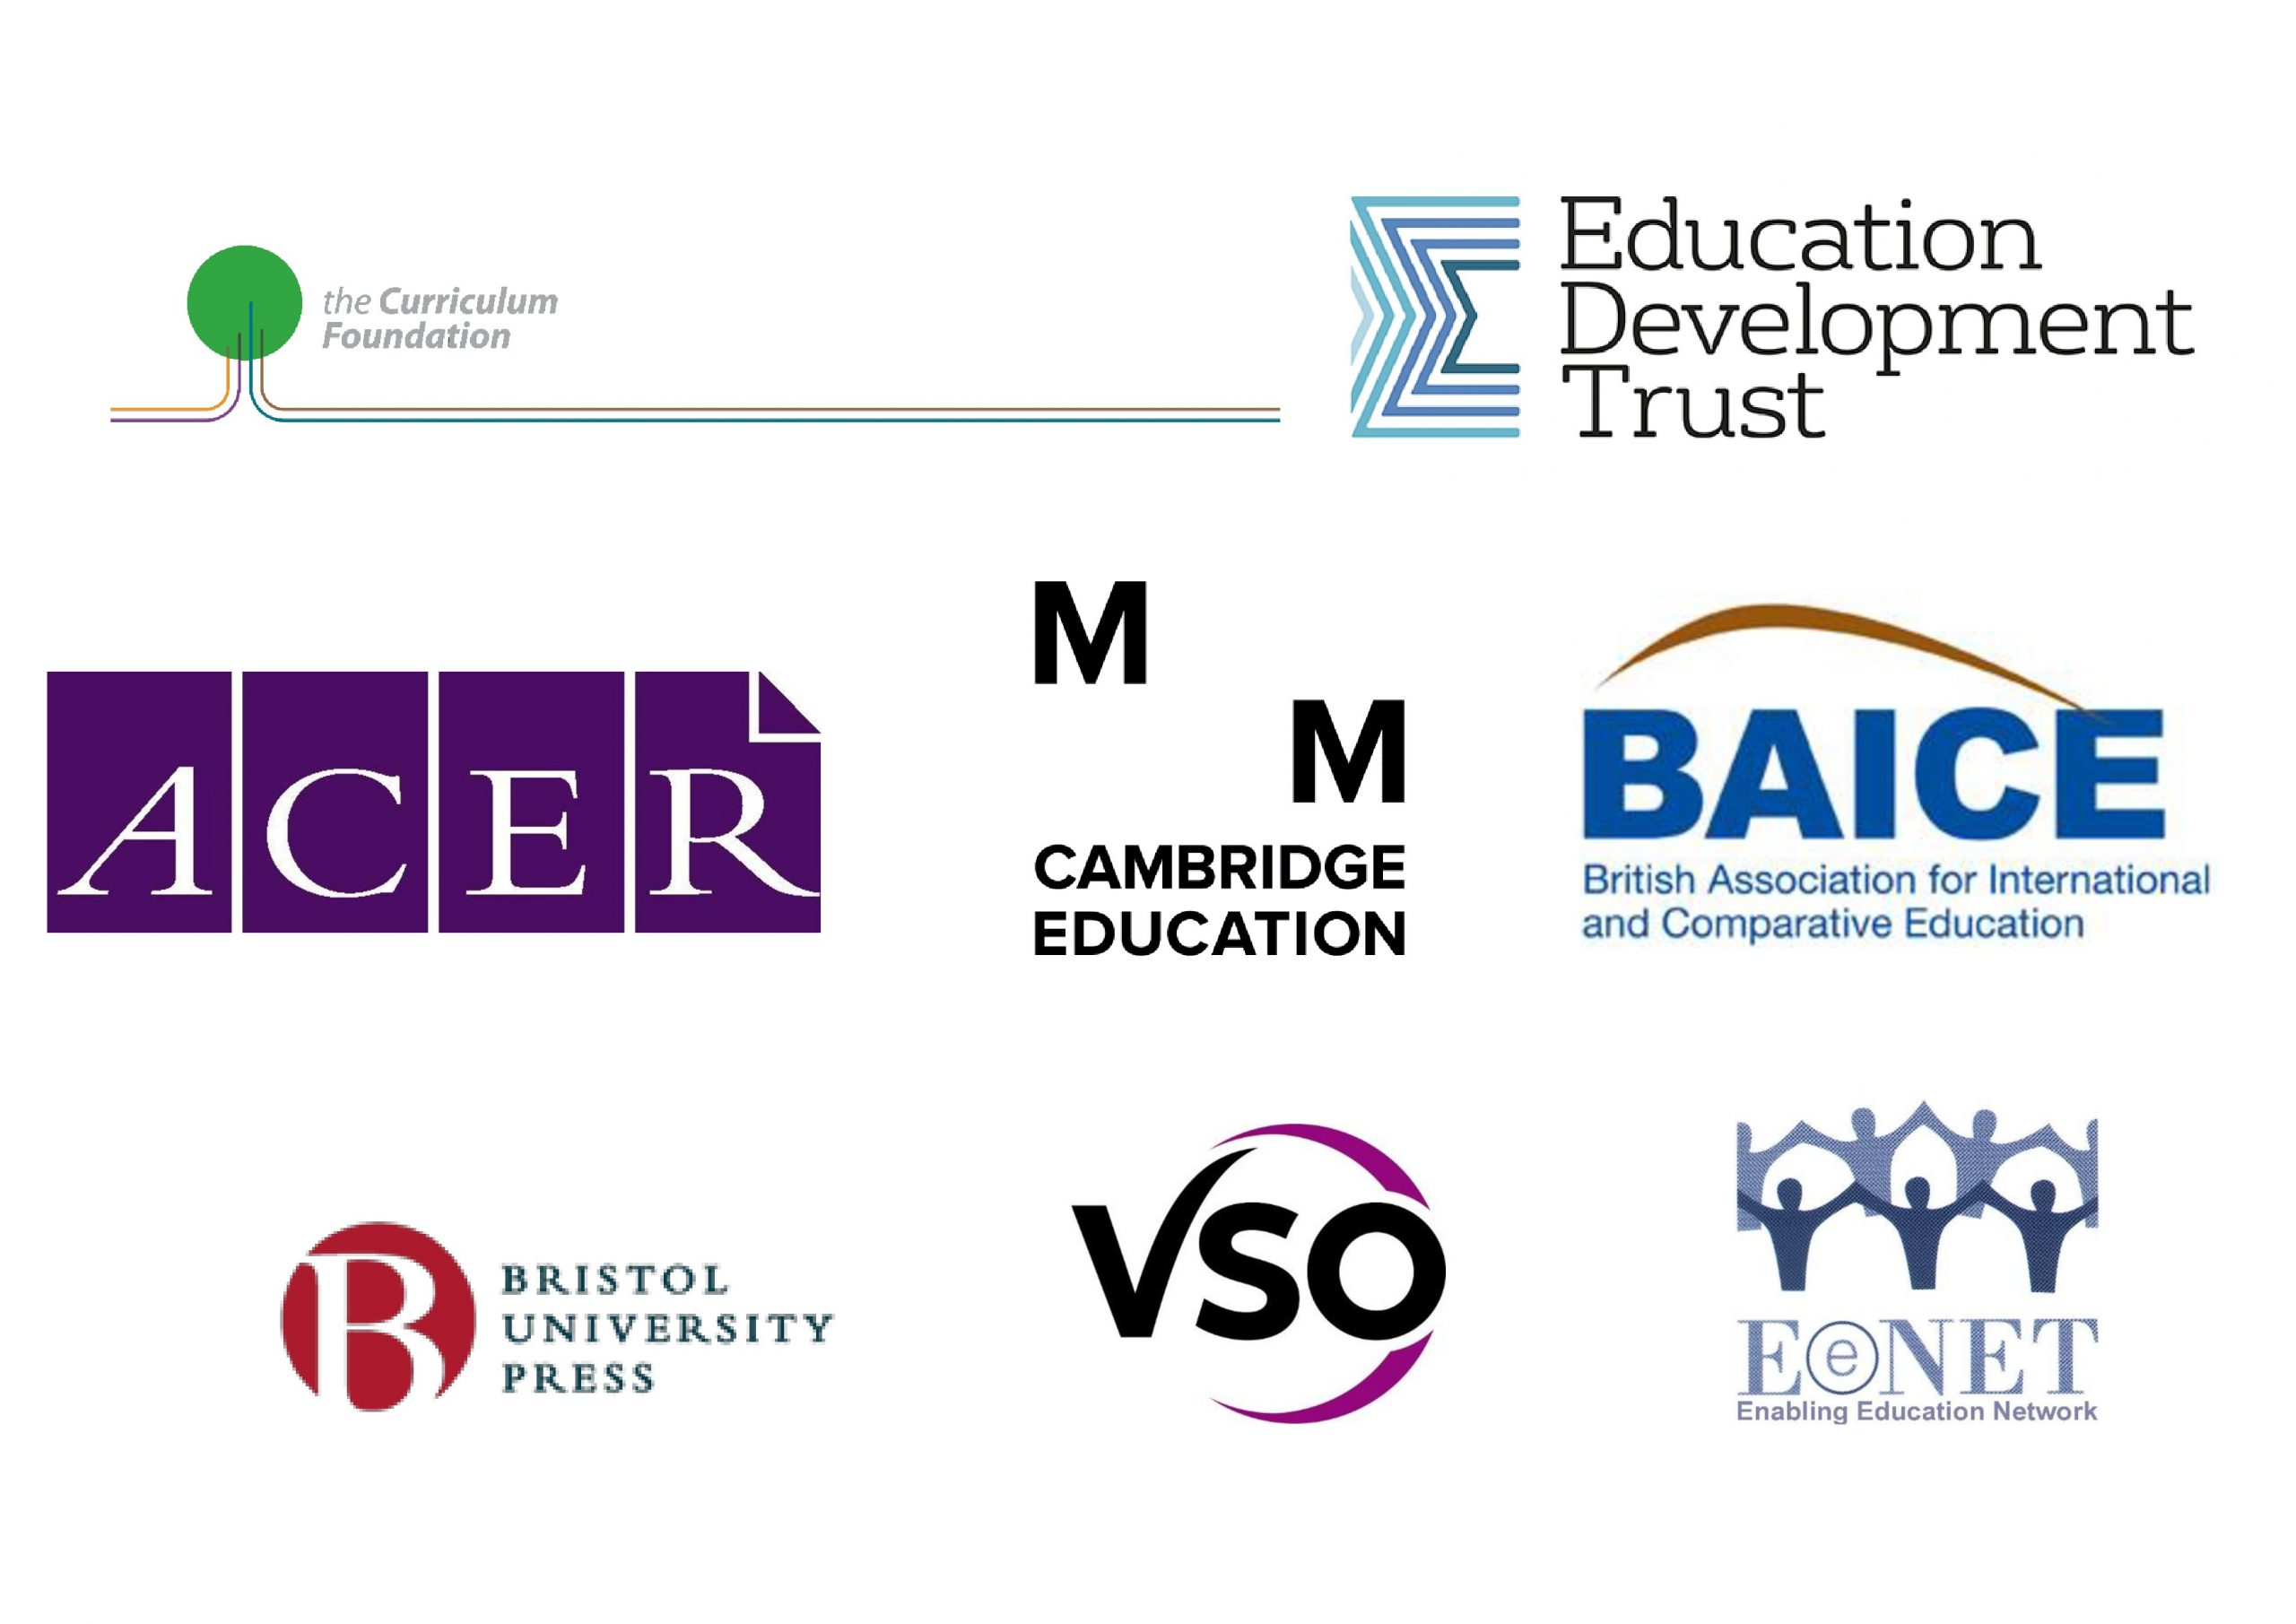 Logos of Exhibitors and sponsors at the Conference: Curriculum Foundation, Education Development Trust, ACER, Cambridge Education, BAICE, Bristol University Press, VSO and EENET